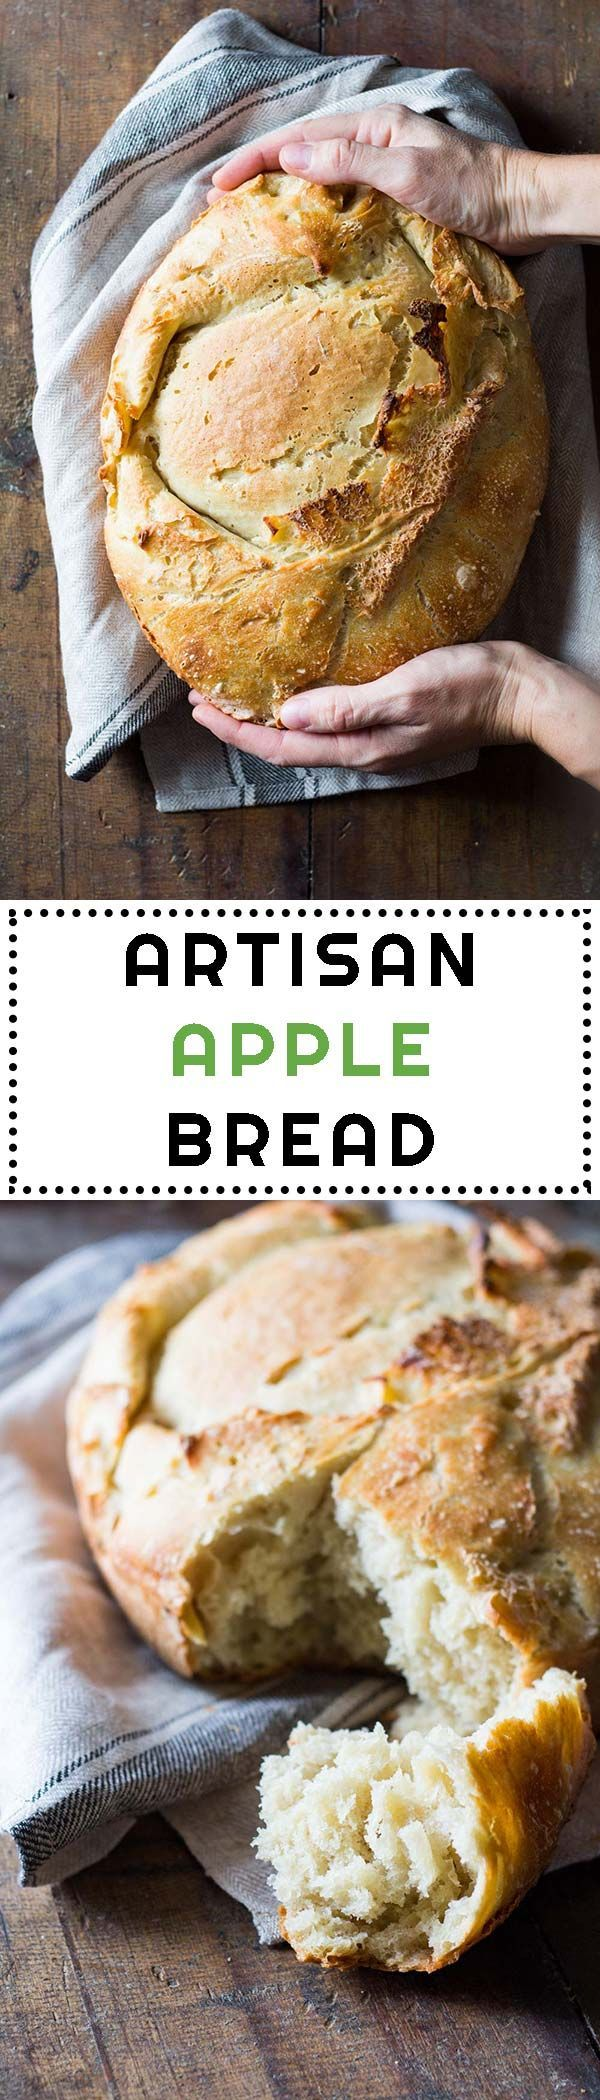 This is a real artisan apple bread with fresh apples. 12-hour starter, knead, rise, fold in apples, rise again, bake, give it a bite and fly to heaven! via /greenhealthycoo/